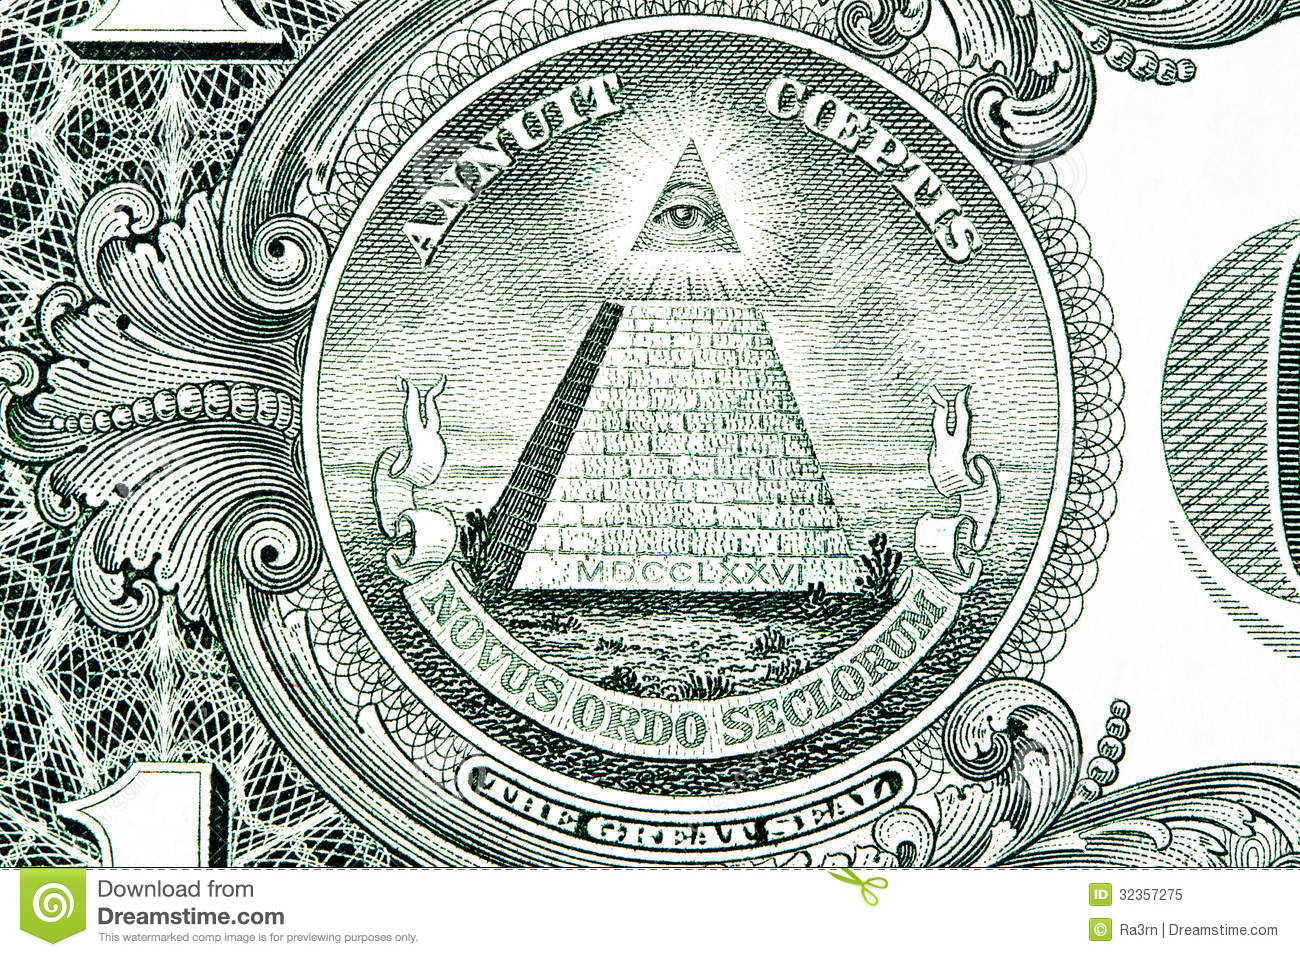 Dead man building is louis kahns posthumous new york project his sinister great seal on the back of one dollar bills biocorpaavc Images